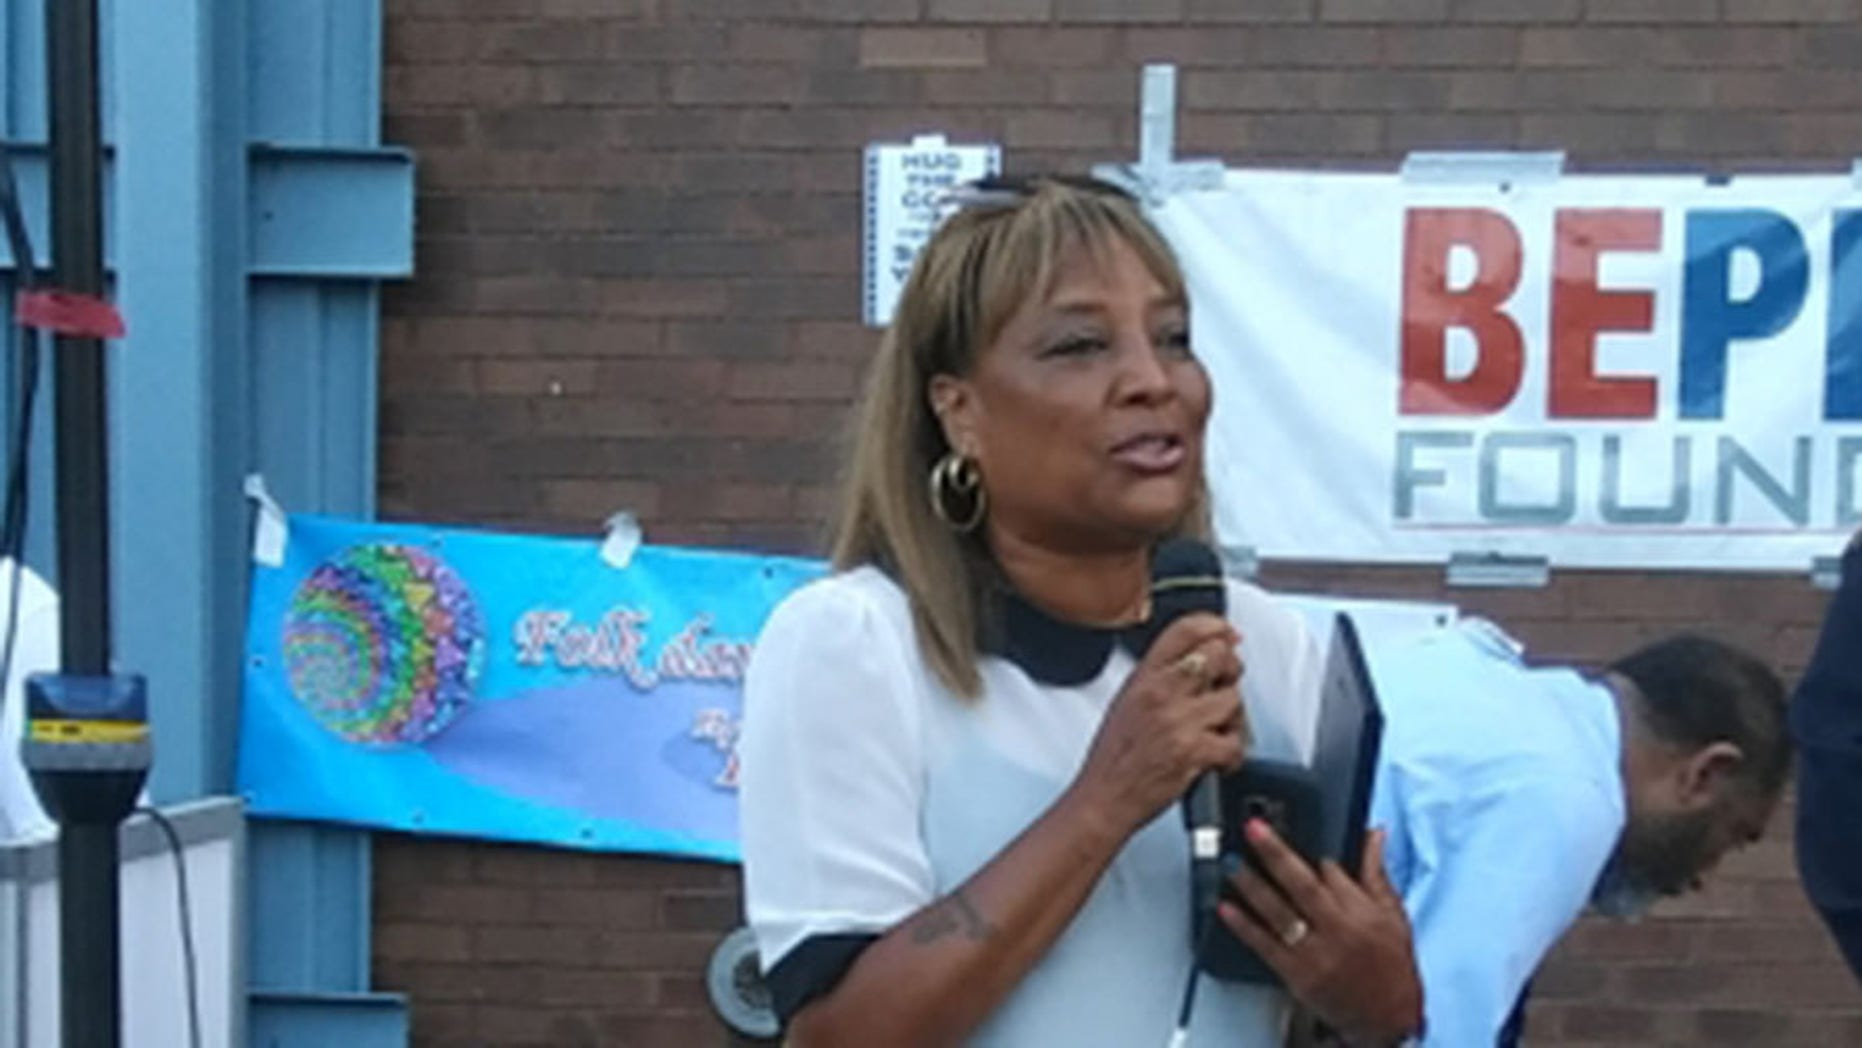 NY Assemblywoman Pamela Harris was indicted Tuesday on multiple counts of fraud.